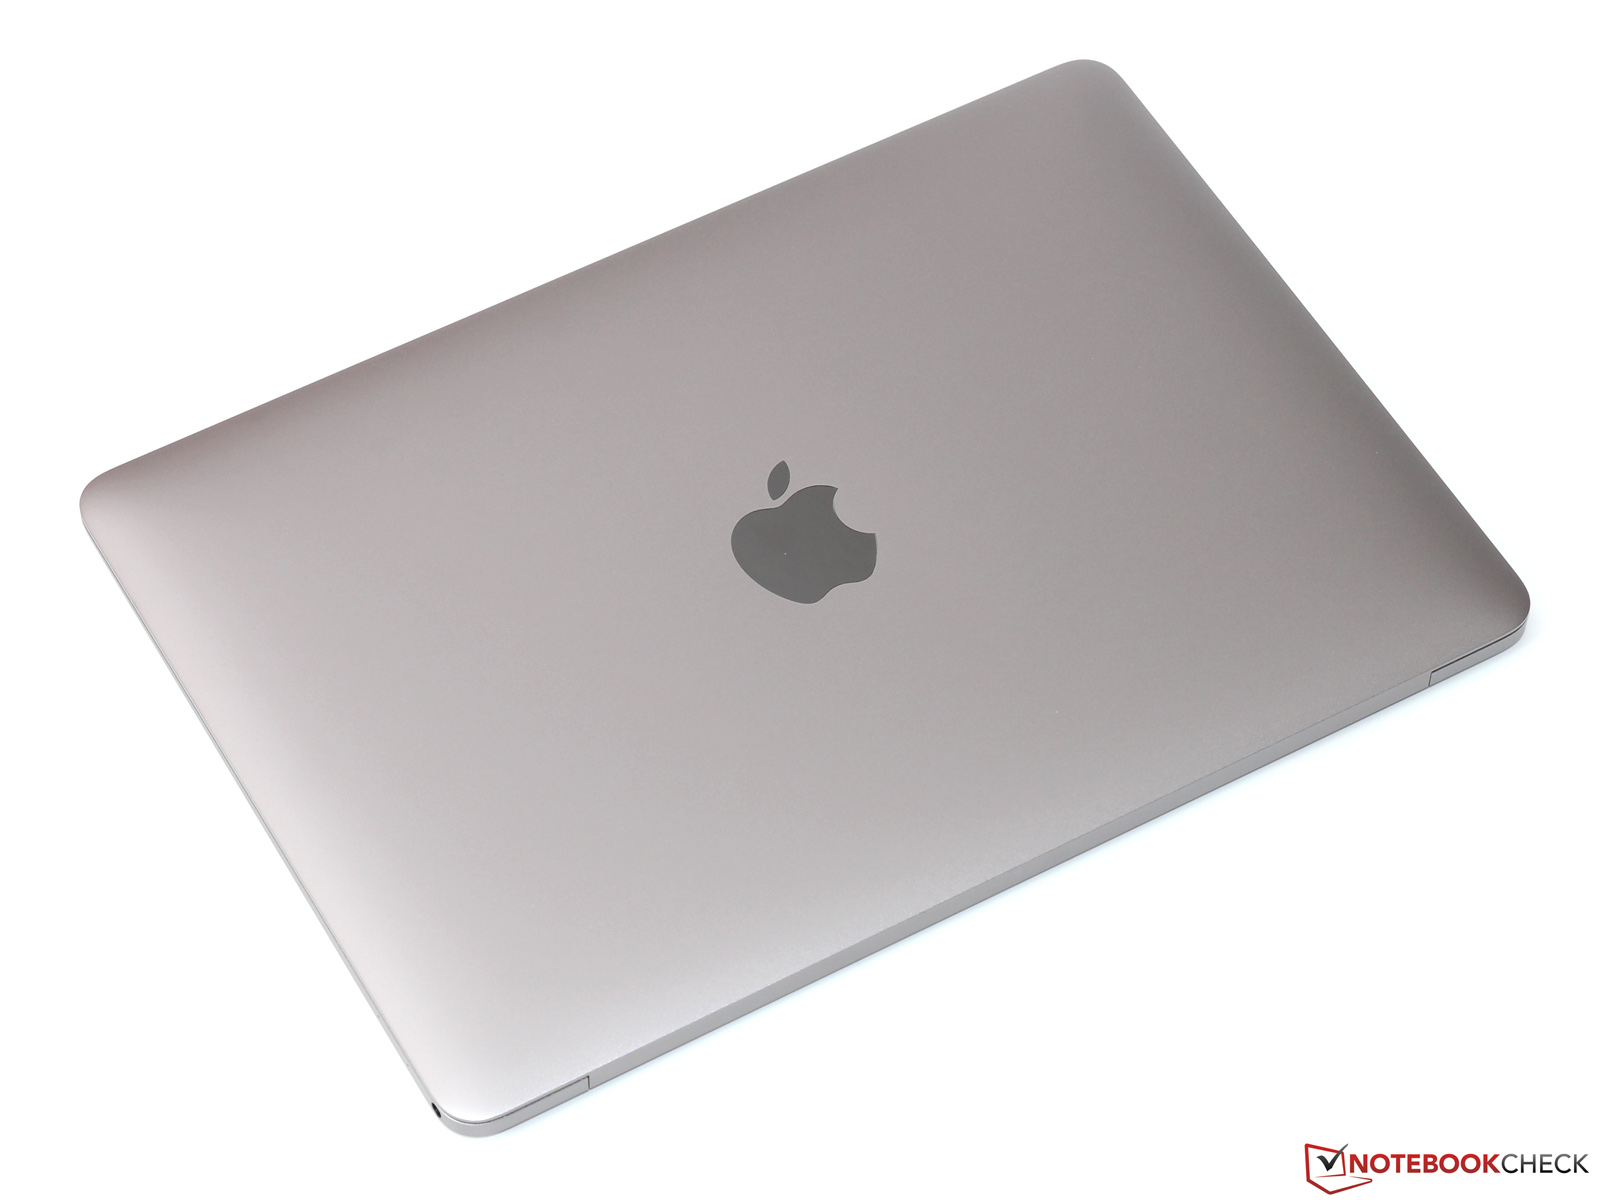 "Apple - Macbook MNYG2LL/A - 12"" Display - Intel Core i5 - 8GB Memory - 512GB Flash Storage"